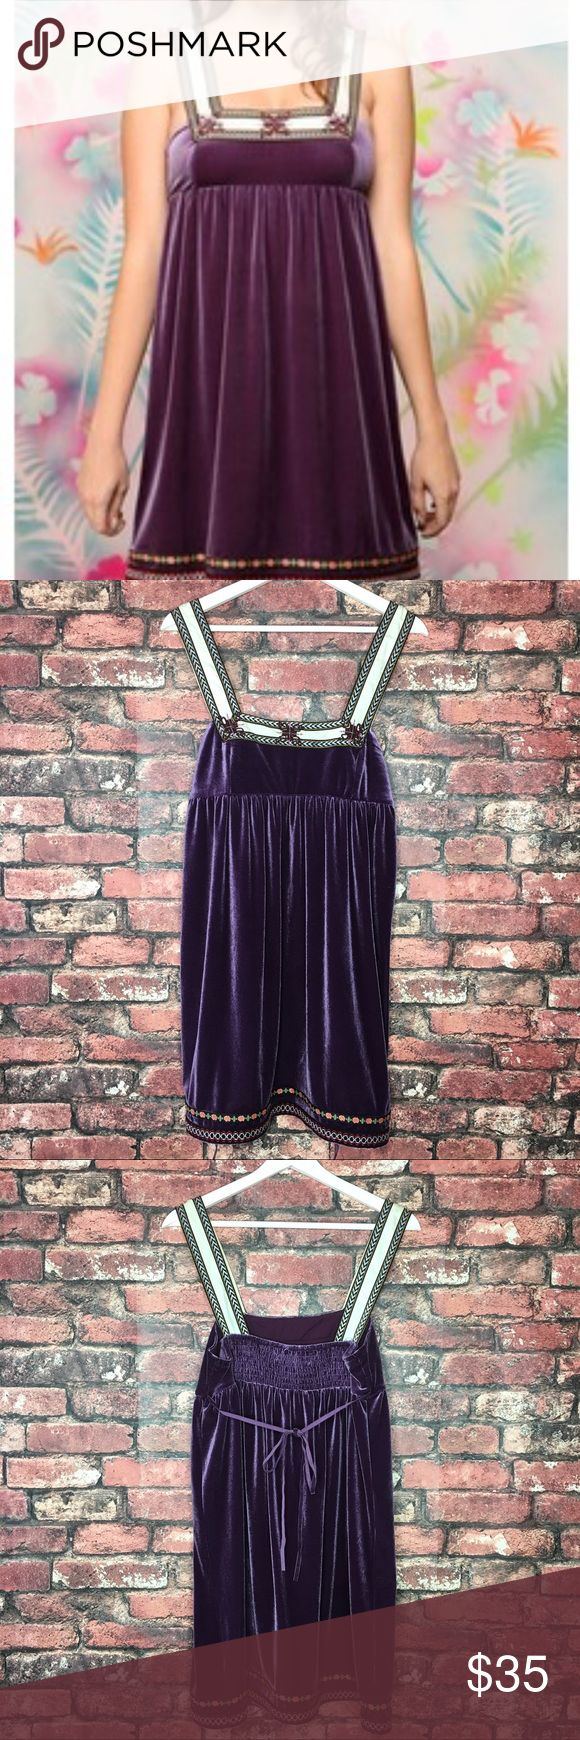 Free People Scandinavian Snowflake Dress The perfect unique purple velvet dress to add to your wardrobe. Great for festivals or special events. In excellent condition. Free People Dresses